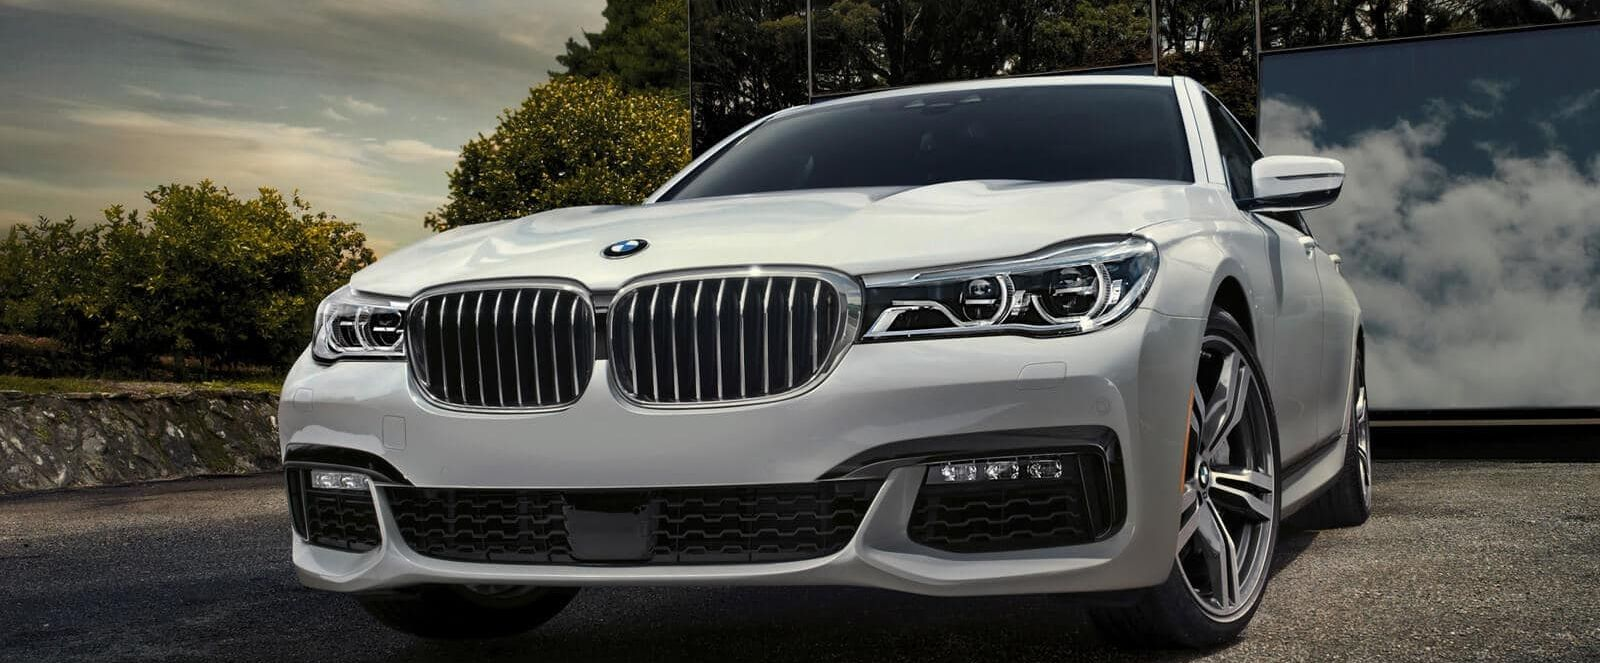 2019 Bmw 7 Series Leasing Near Quitman Ms Bmw Of Meridian